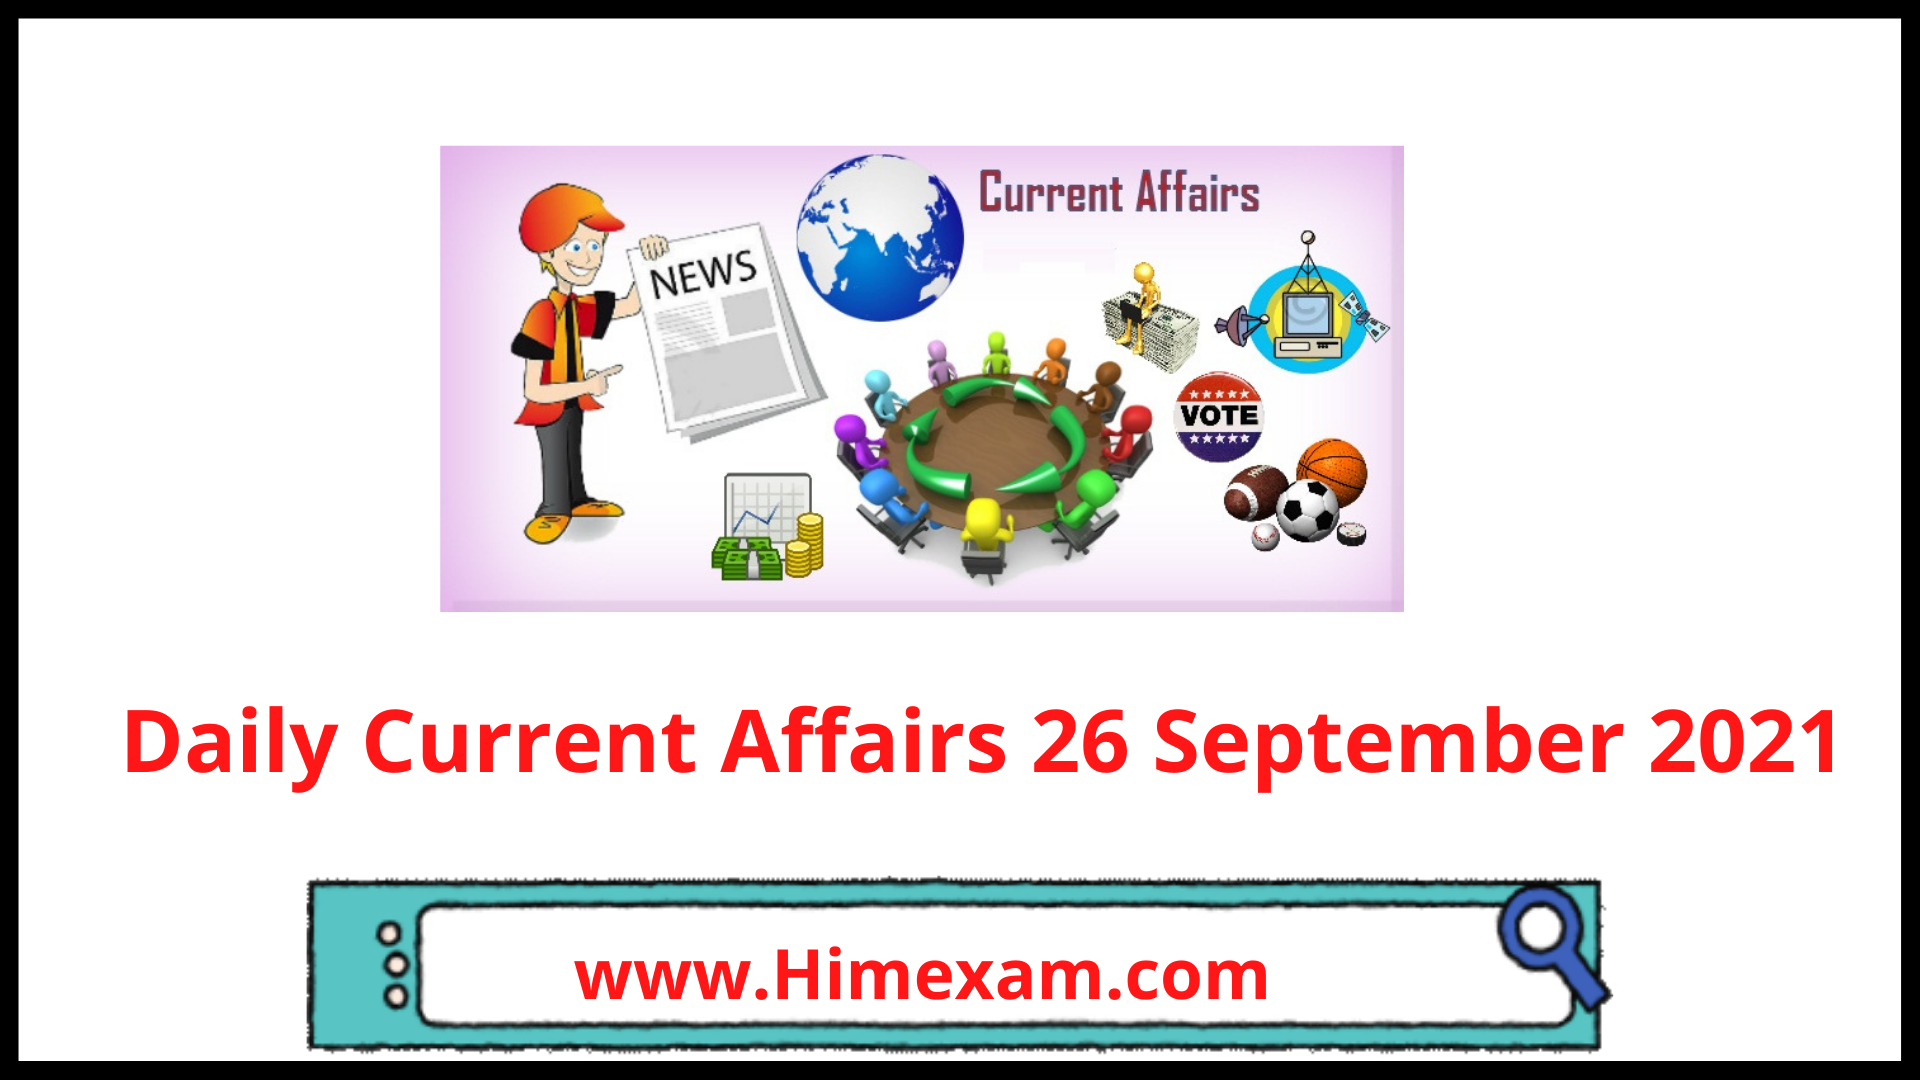 Daily Current Affairs 26 September 2021